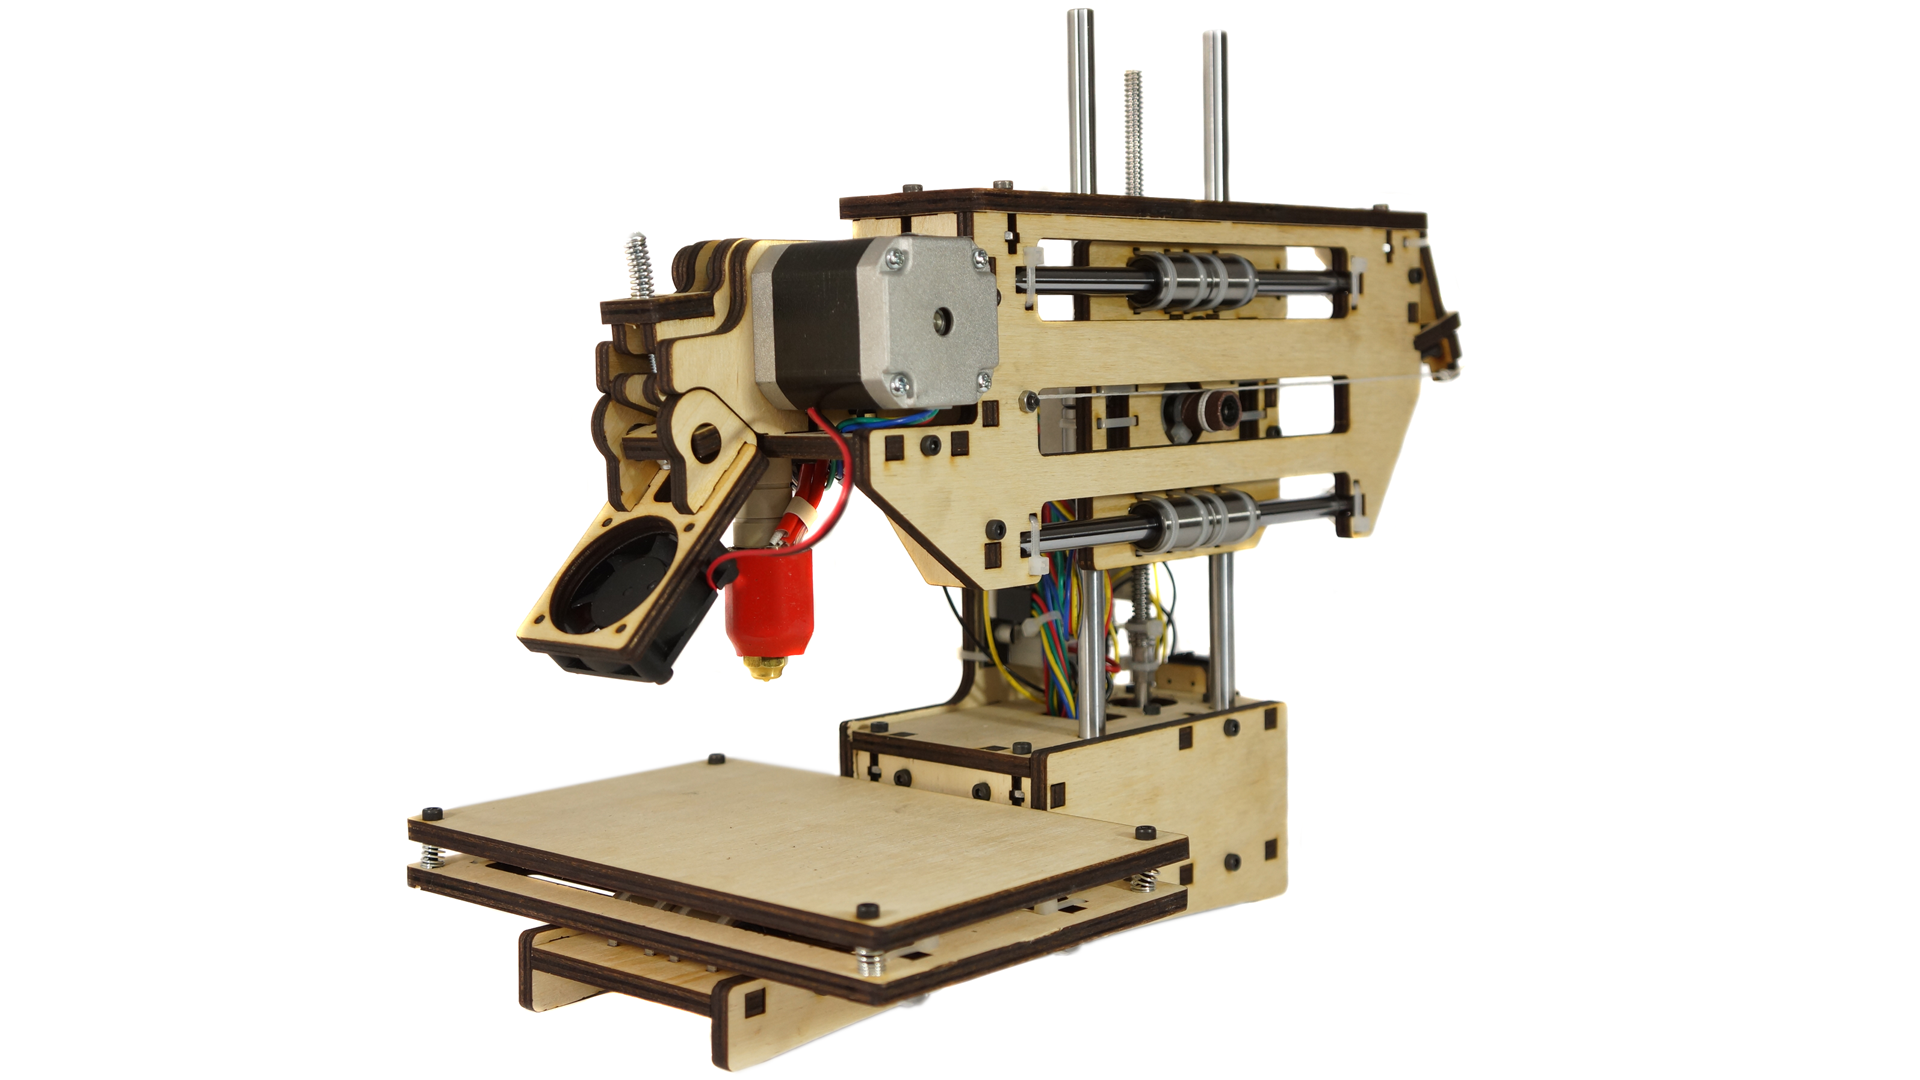 printrbot simple guide